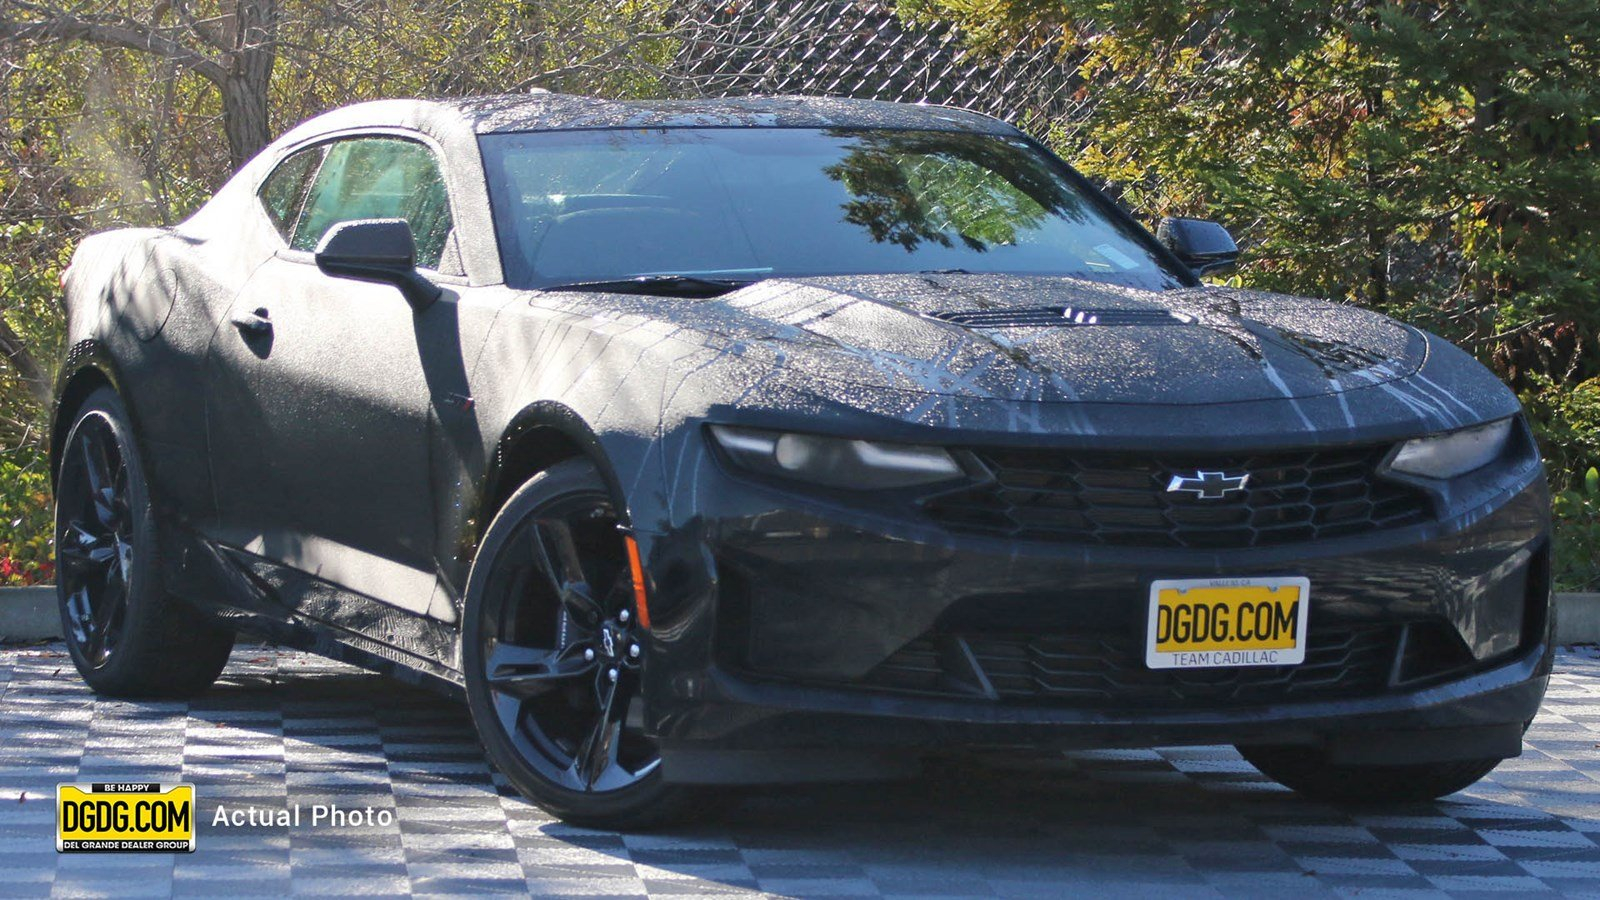 2020 Chevrolet, Camaro Lt1 Rwd 2Dr Car 2022 Chevy Camaro Ss Owners Manual, Pictures, Price